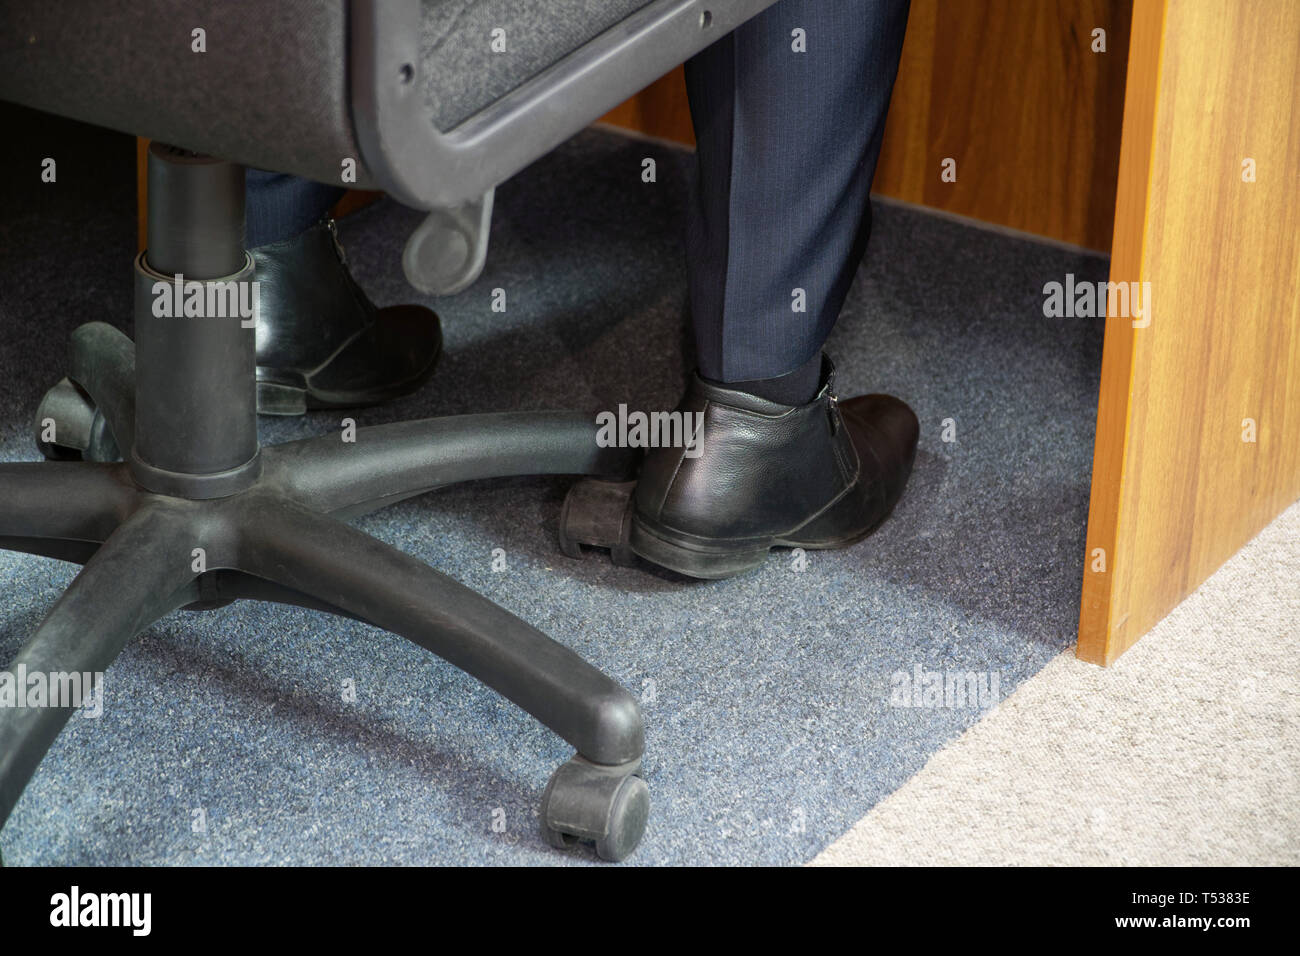 The legs of a man sitting in an office chair while on duty at work. Job responsibilities - Stock Image